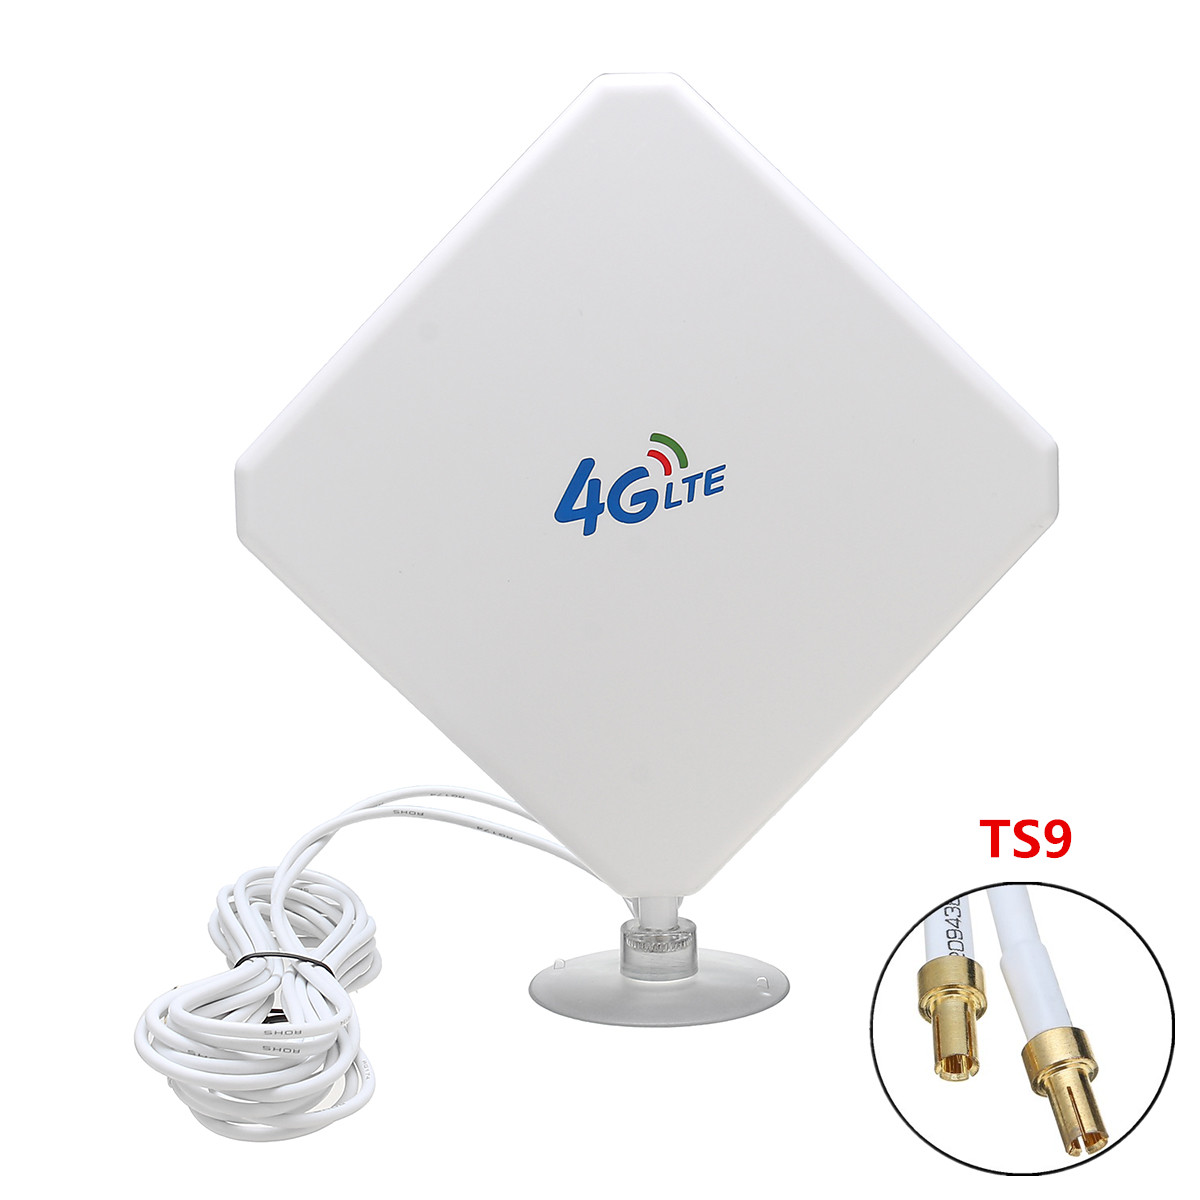 4G LTE Antenna 35dBi High Gain Amplifier Wifi Repeater Mobile Signal Booster Wireless Network Expander Routers TS9 Connector